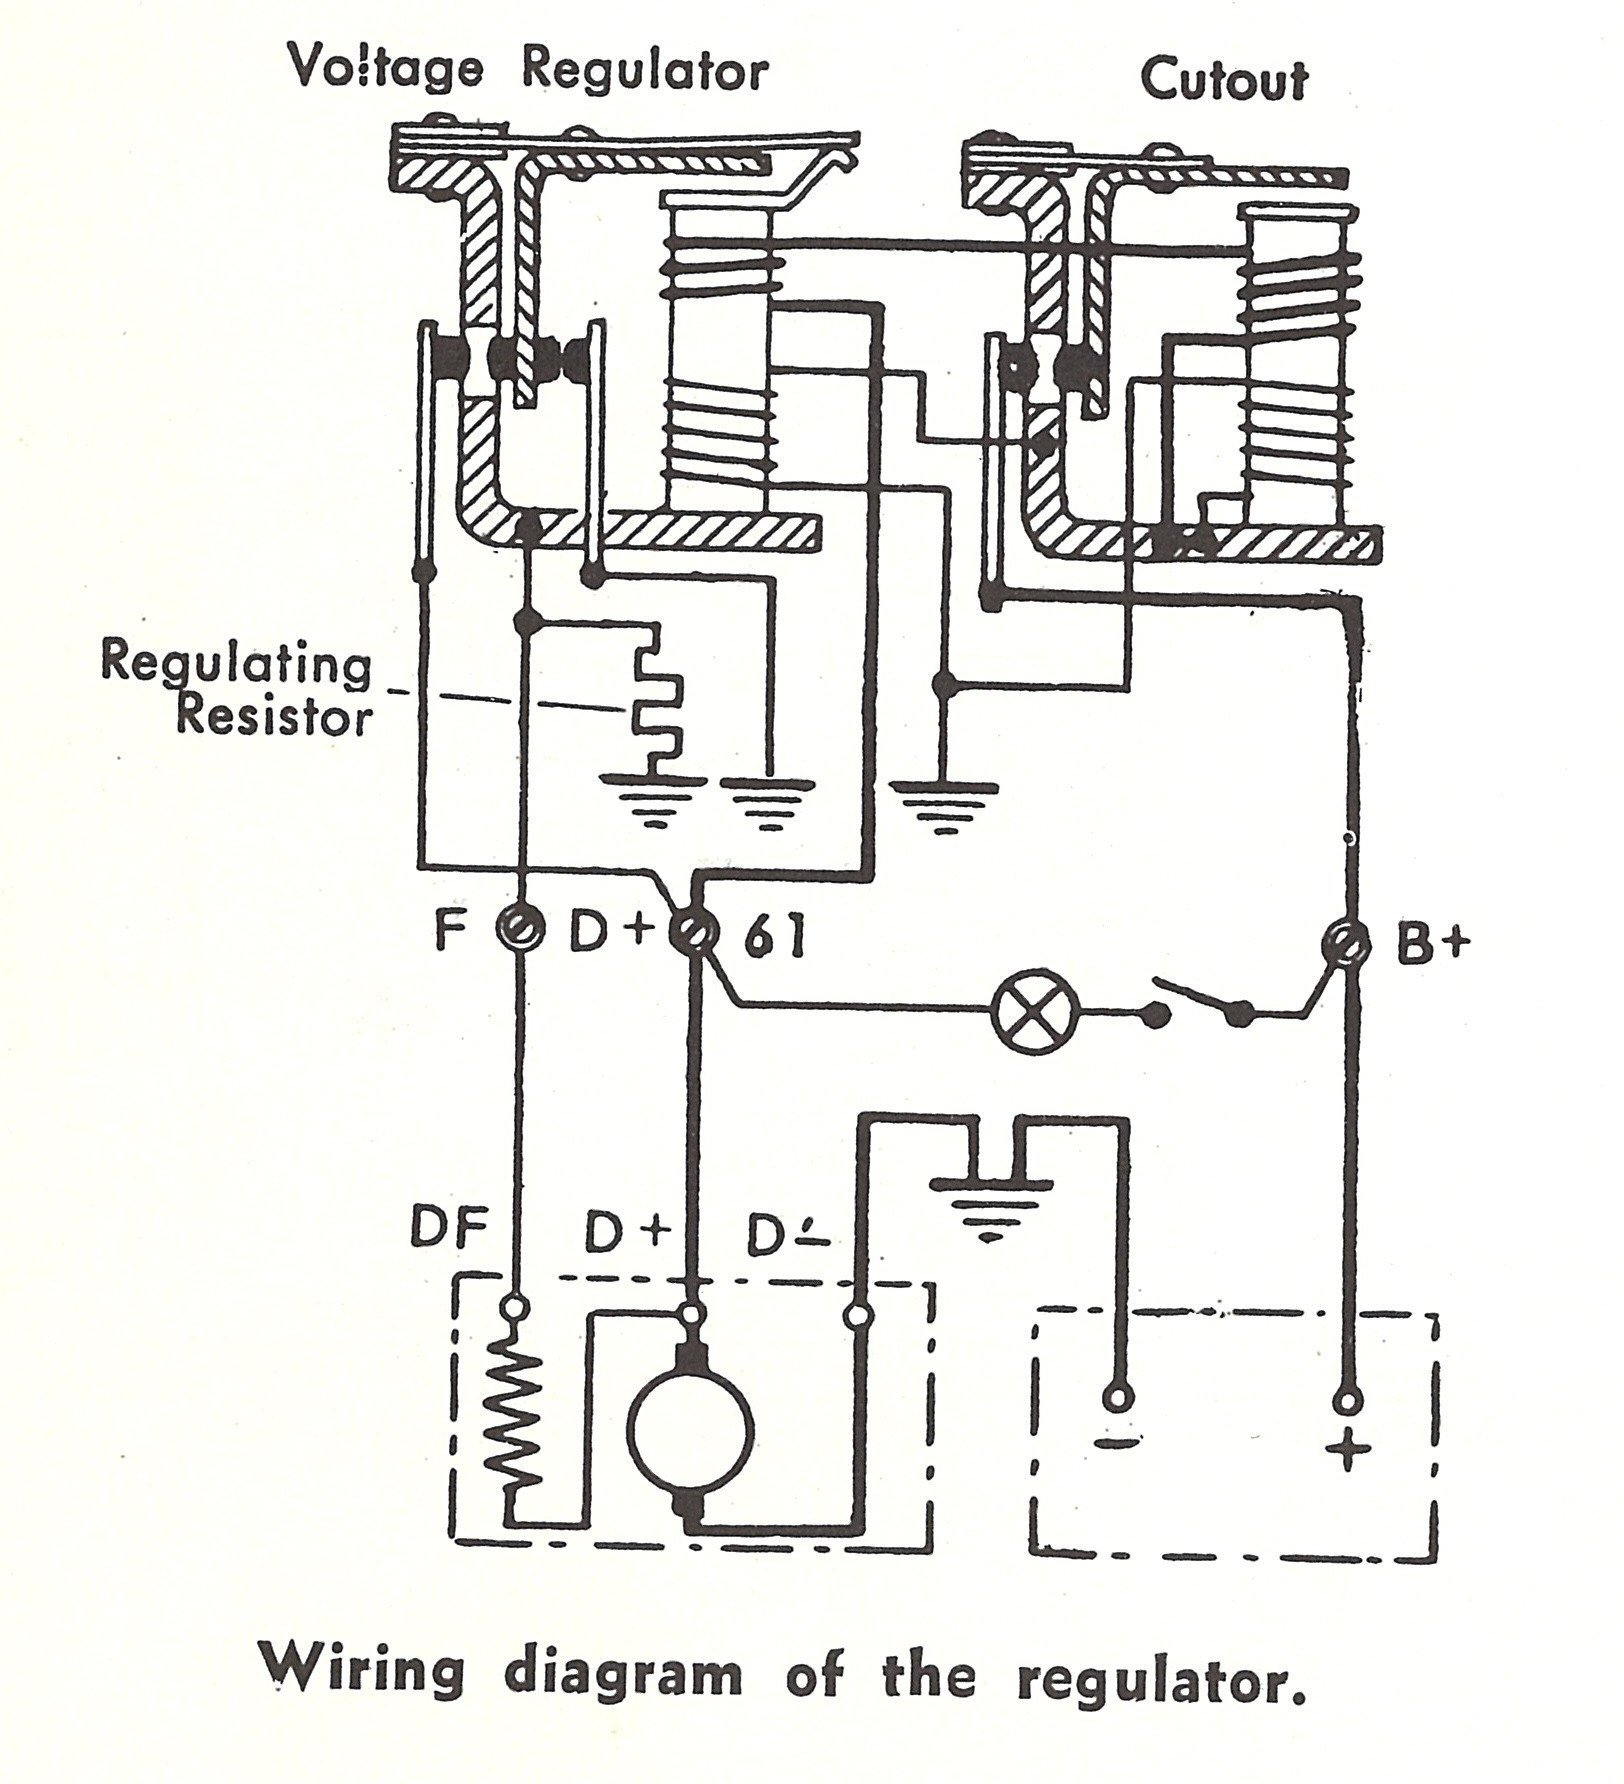 1974 vw alternator wiring diagram images alternator wiring regulator wiring diagram for vw bosch voltage pictures